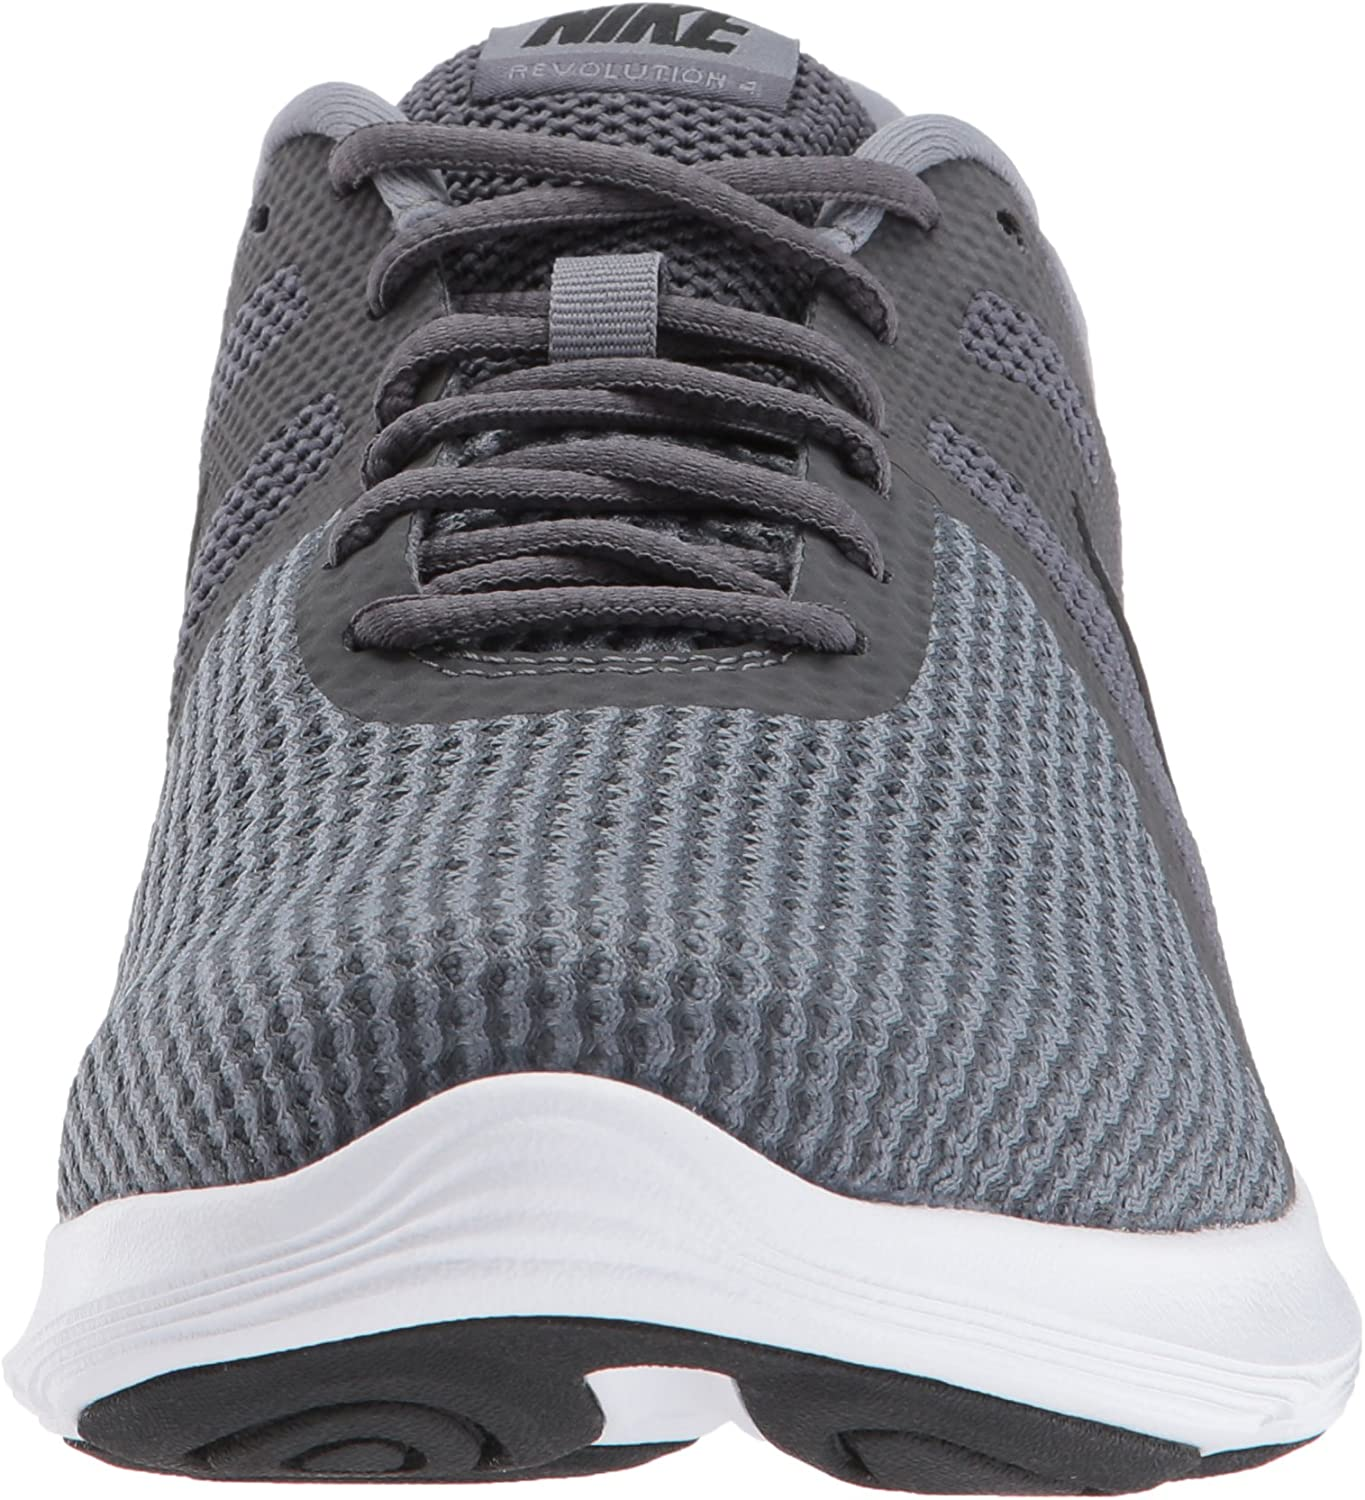 Nike Men s Revolution 4 Running Shoe, Dark Grey Black-Cool Grey White, 10 Regular US